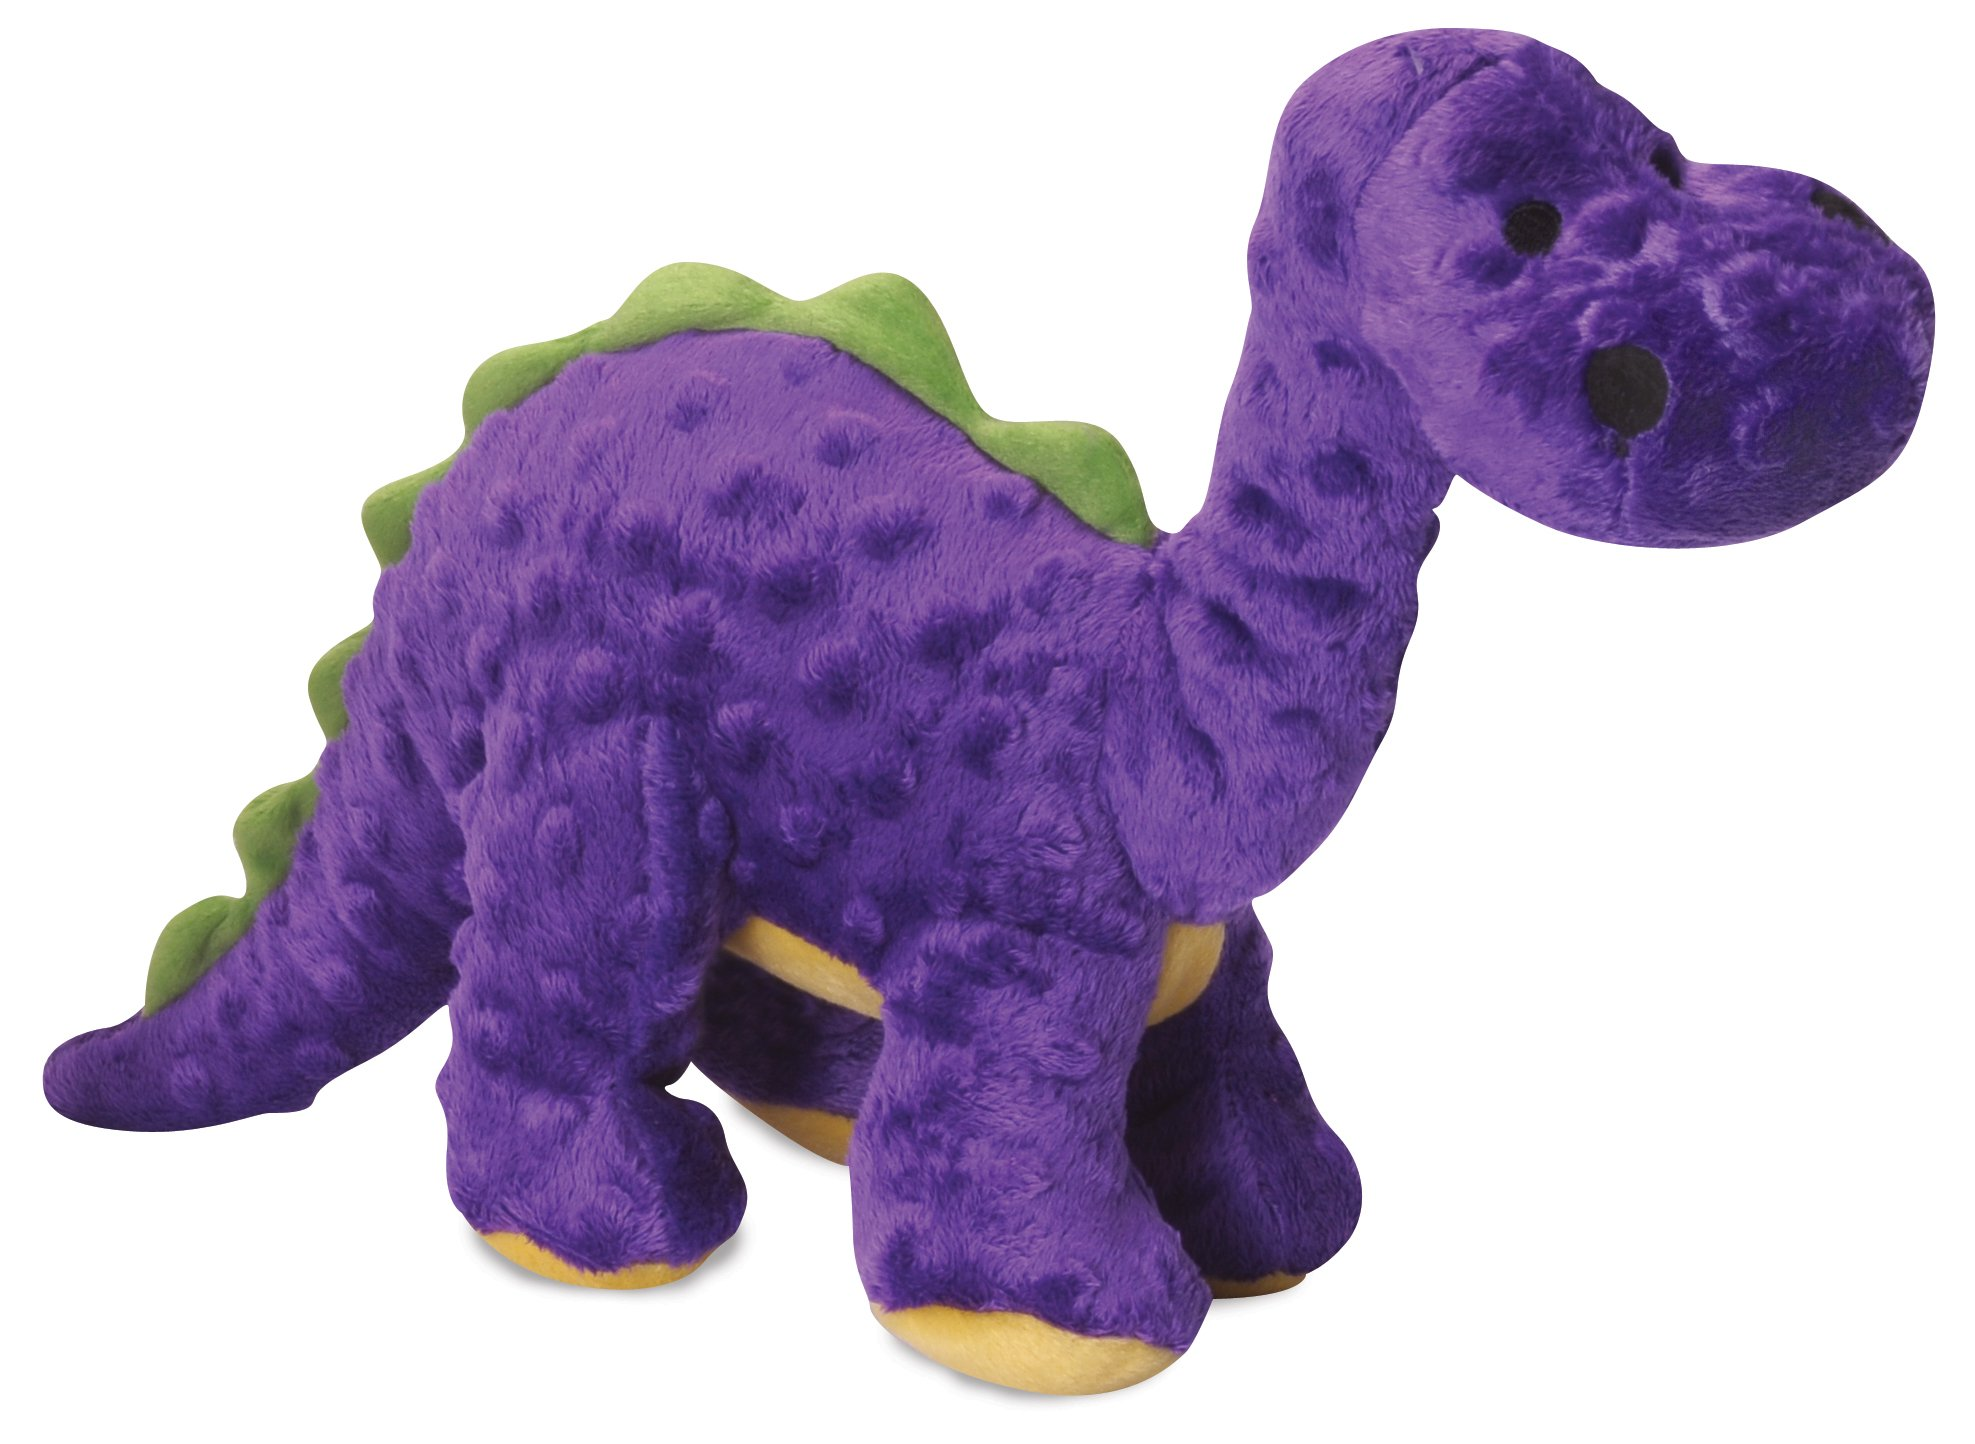 goDog Dinos with Chew Guard Technology Tough Plush Dog Toys Large